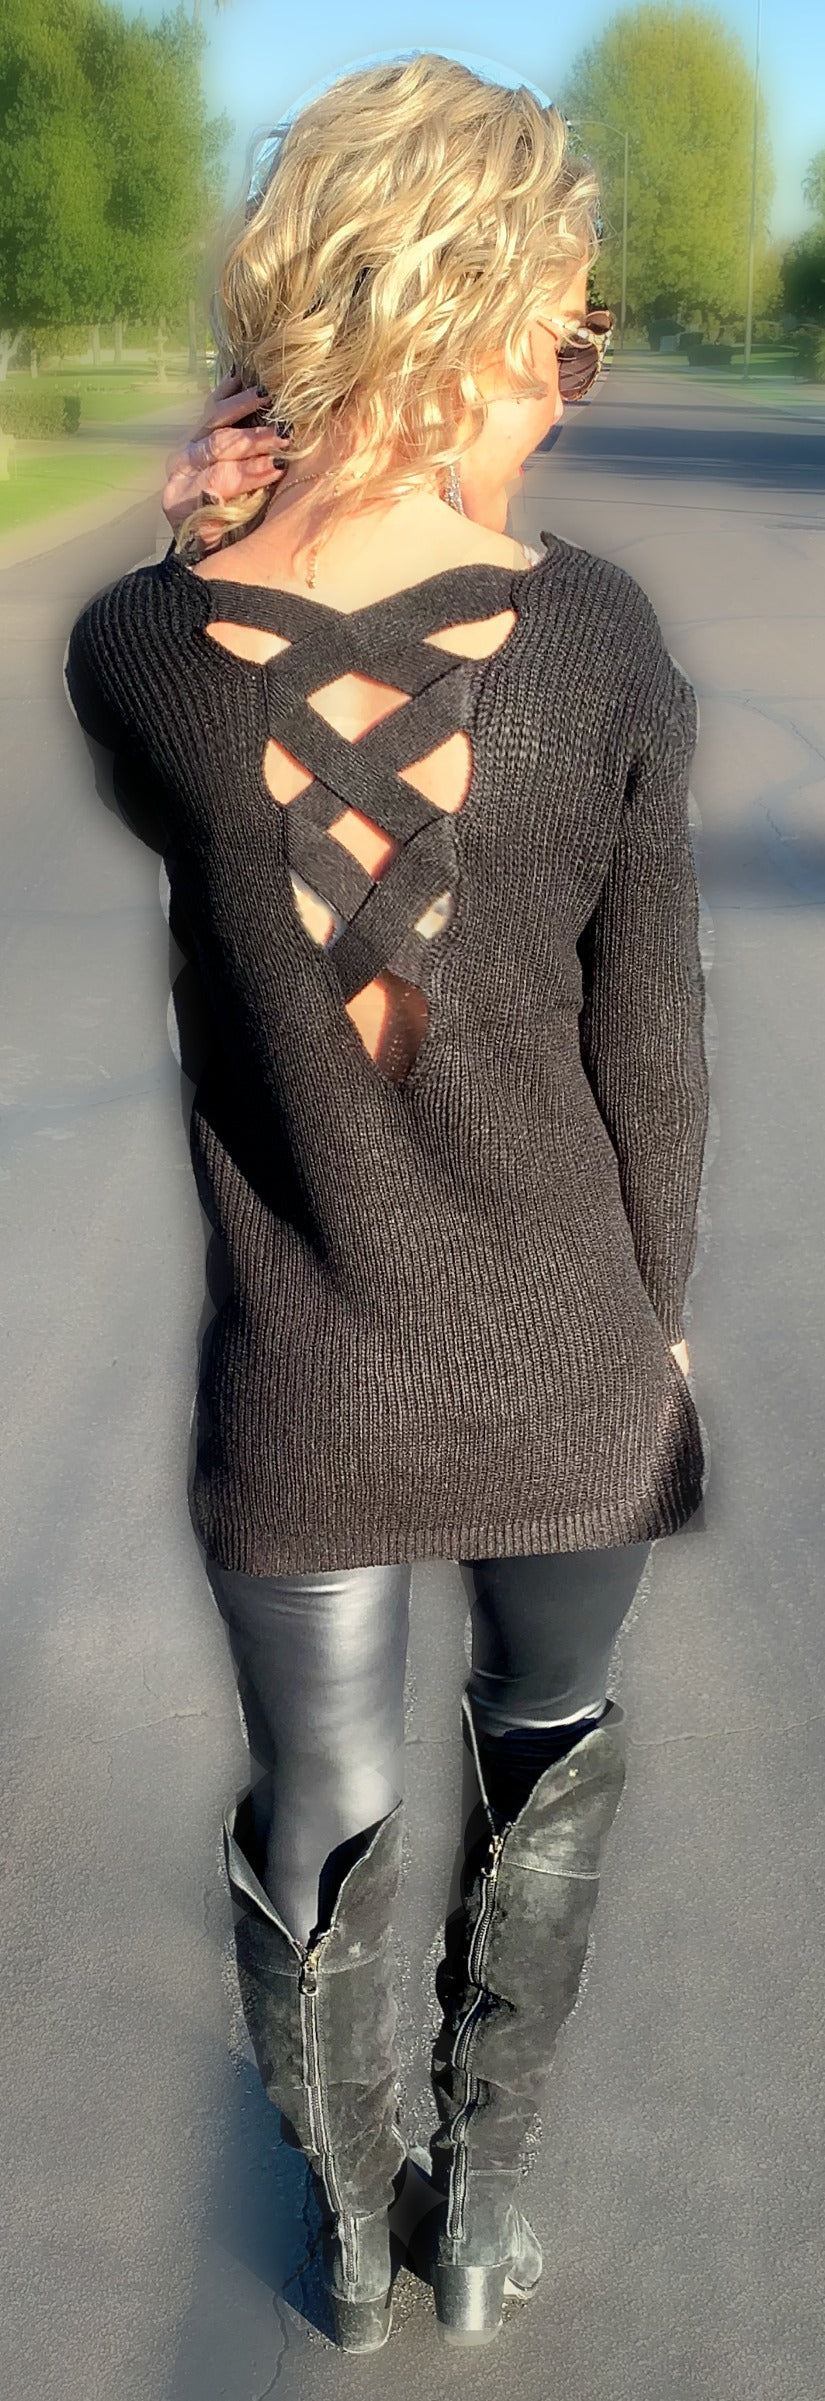 Open Criss Cross Back Sweater - Black